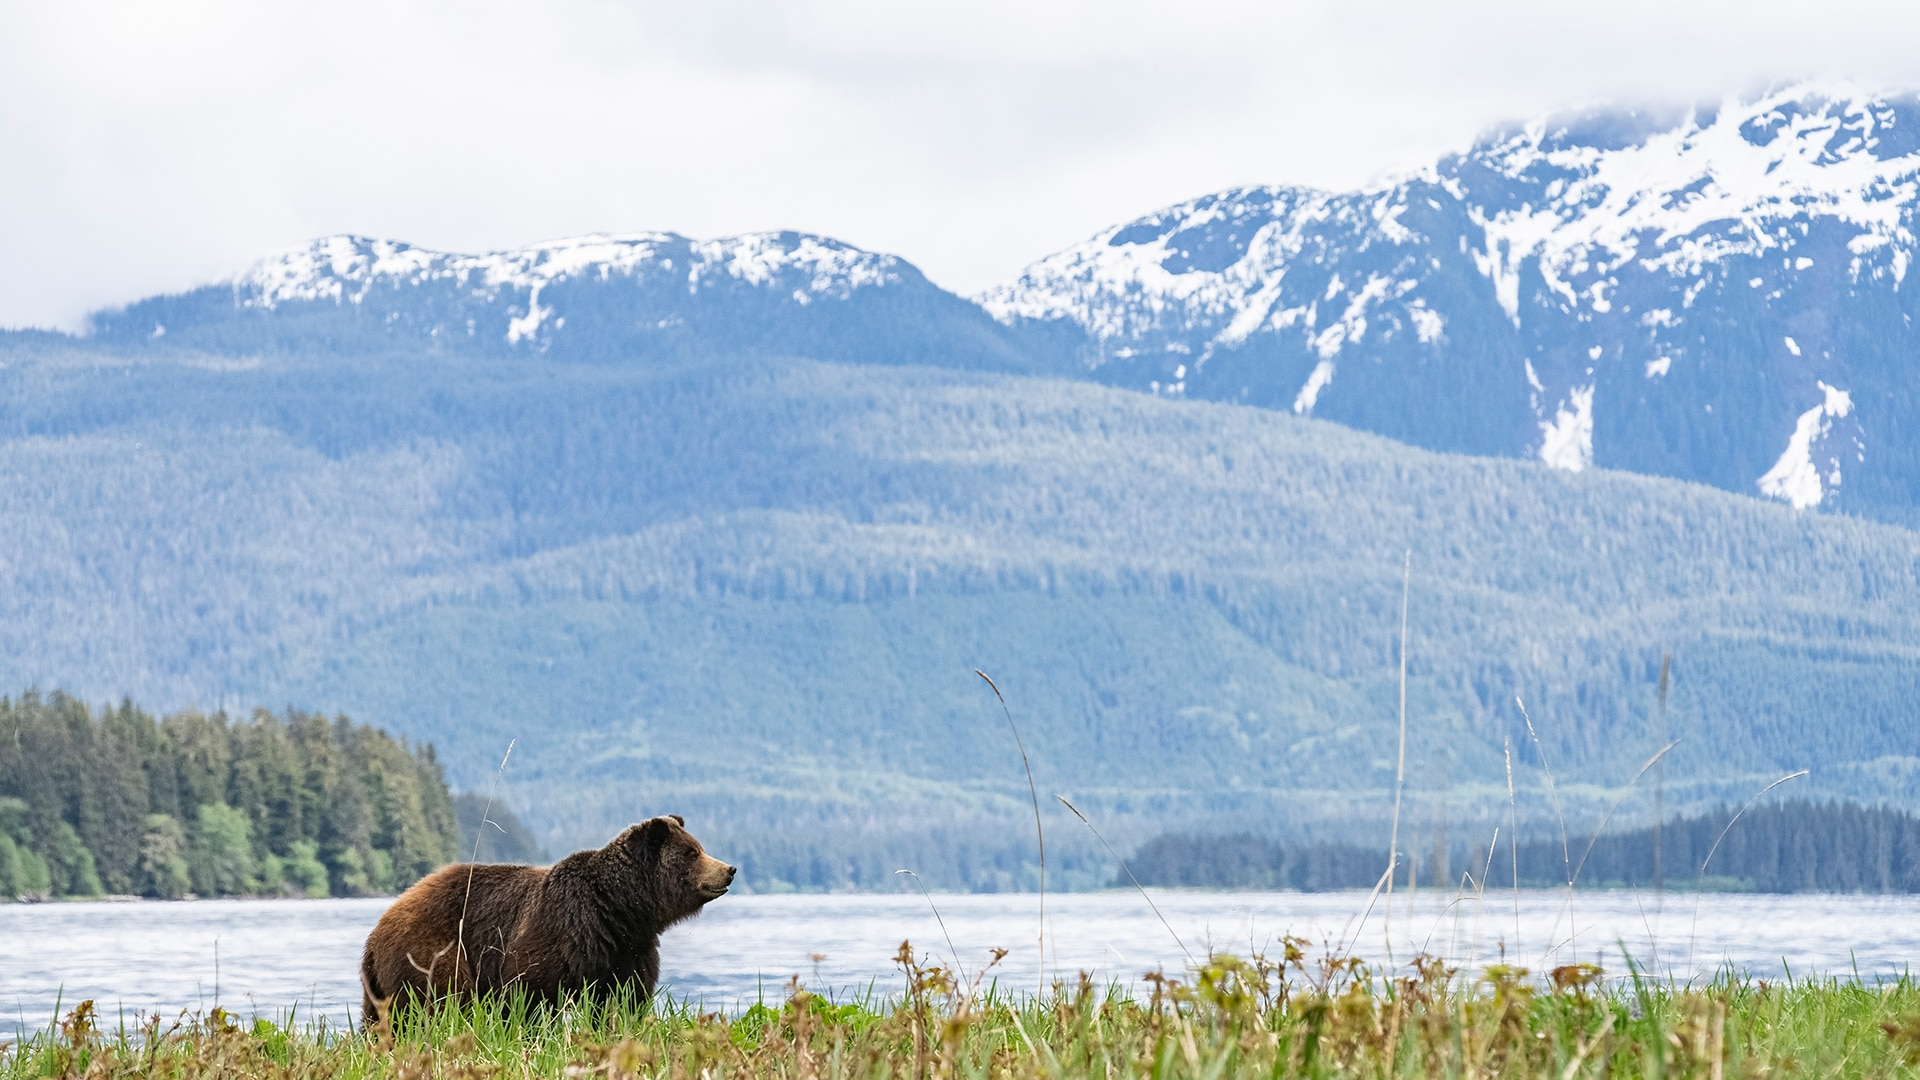 Brown bear standing in front of mountains